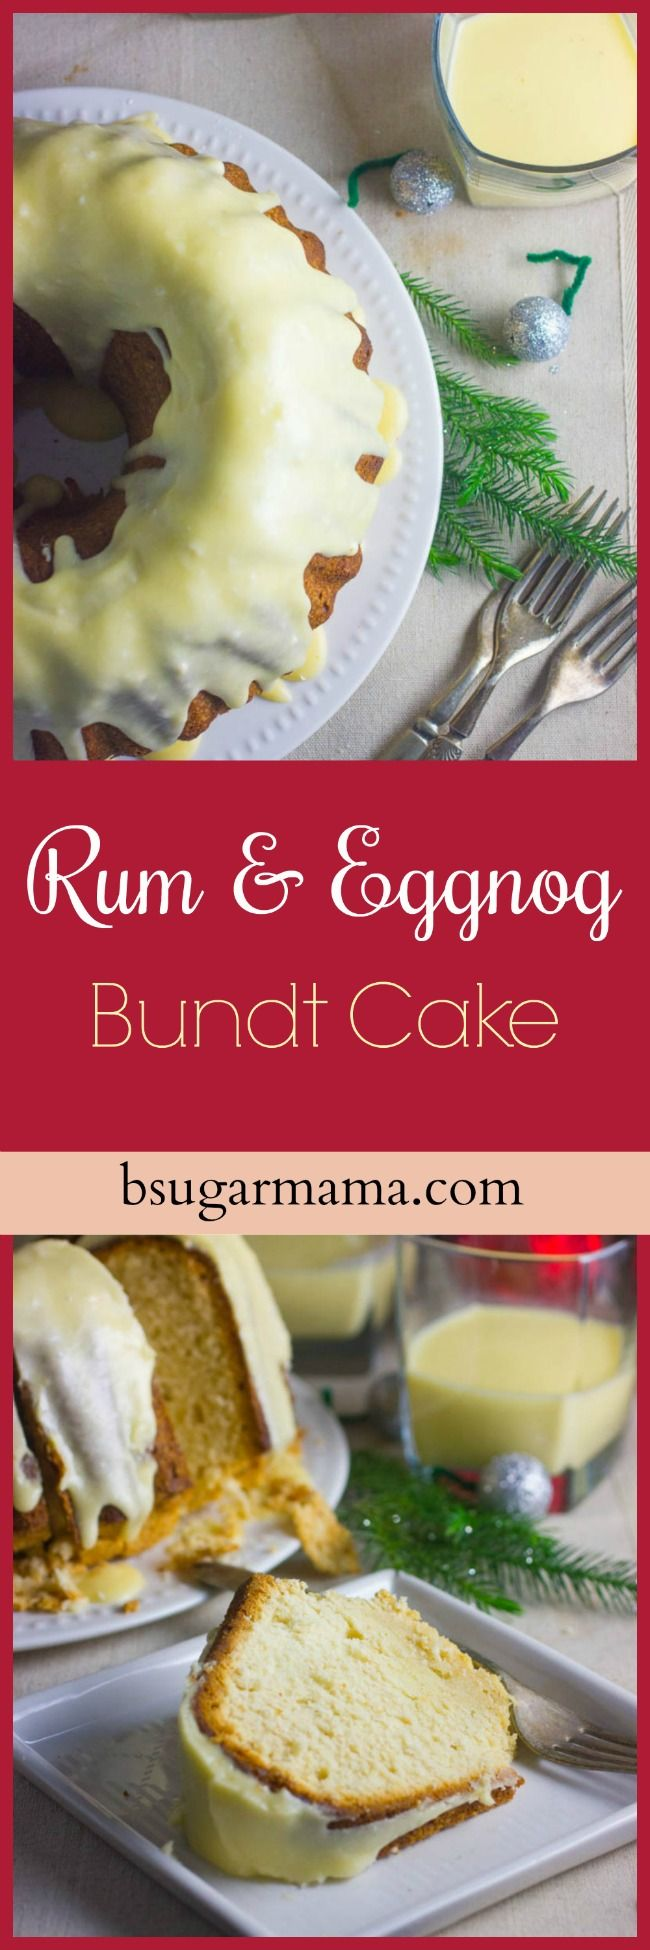 This Rum and Eggnog Bundt Cake is a perfect cake recipe for your holidays! Topped with a eggnog and rum glaze, this will make you fall in love with the holidays.